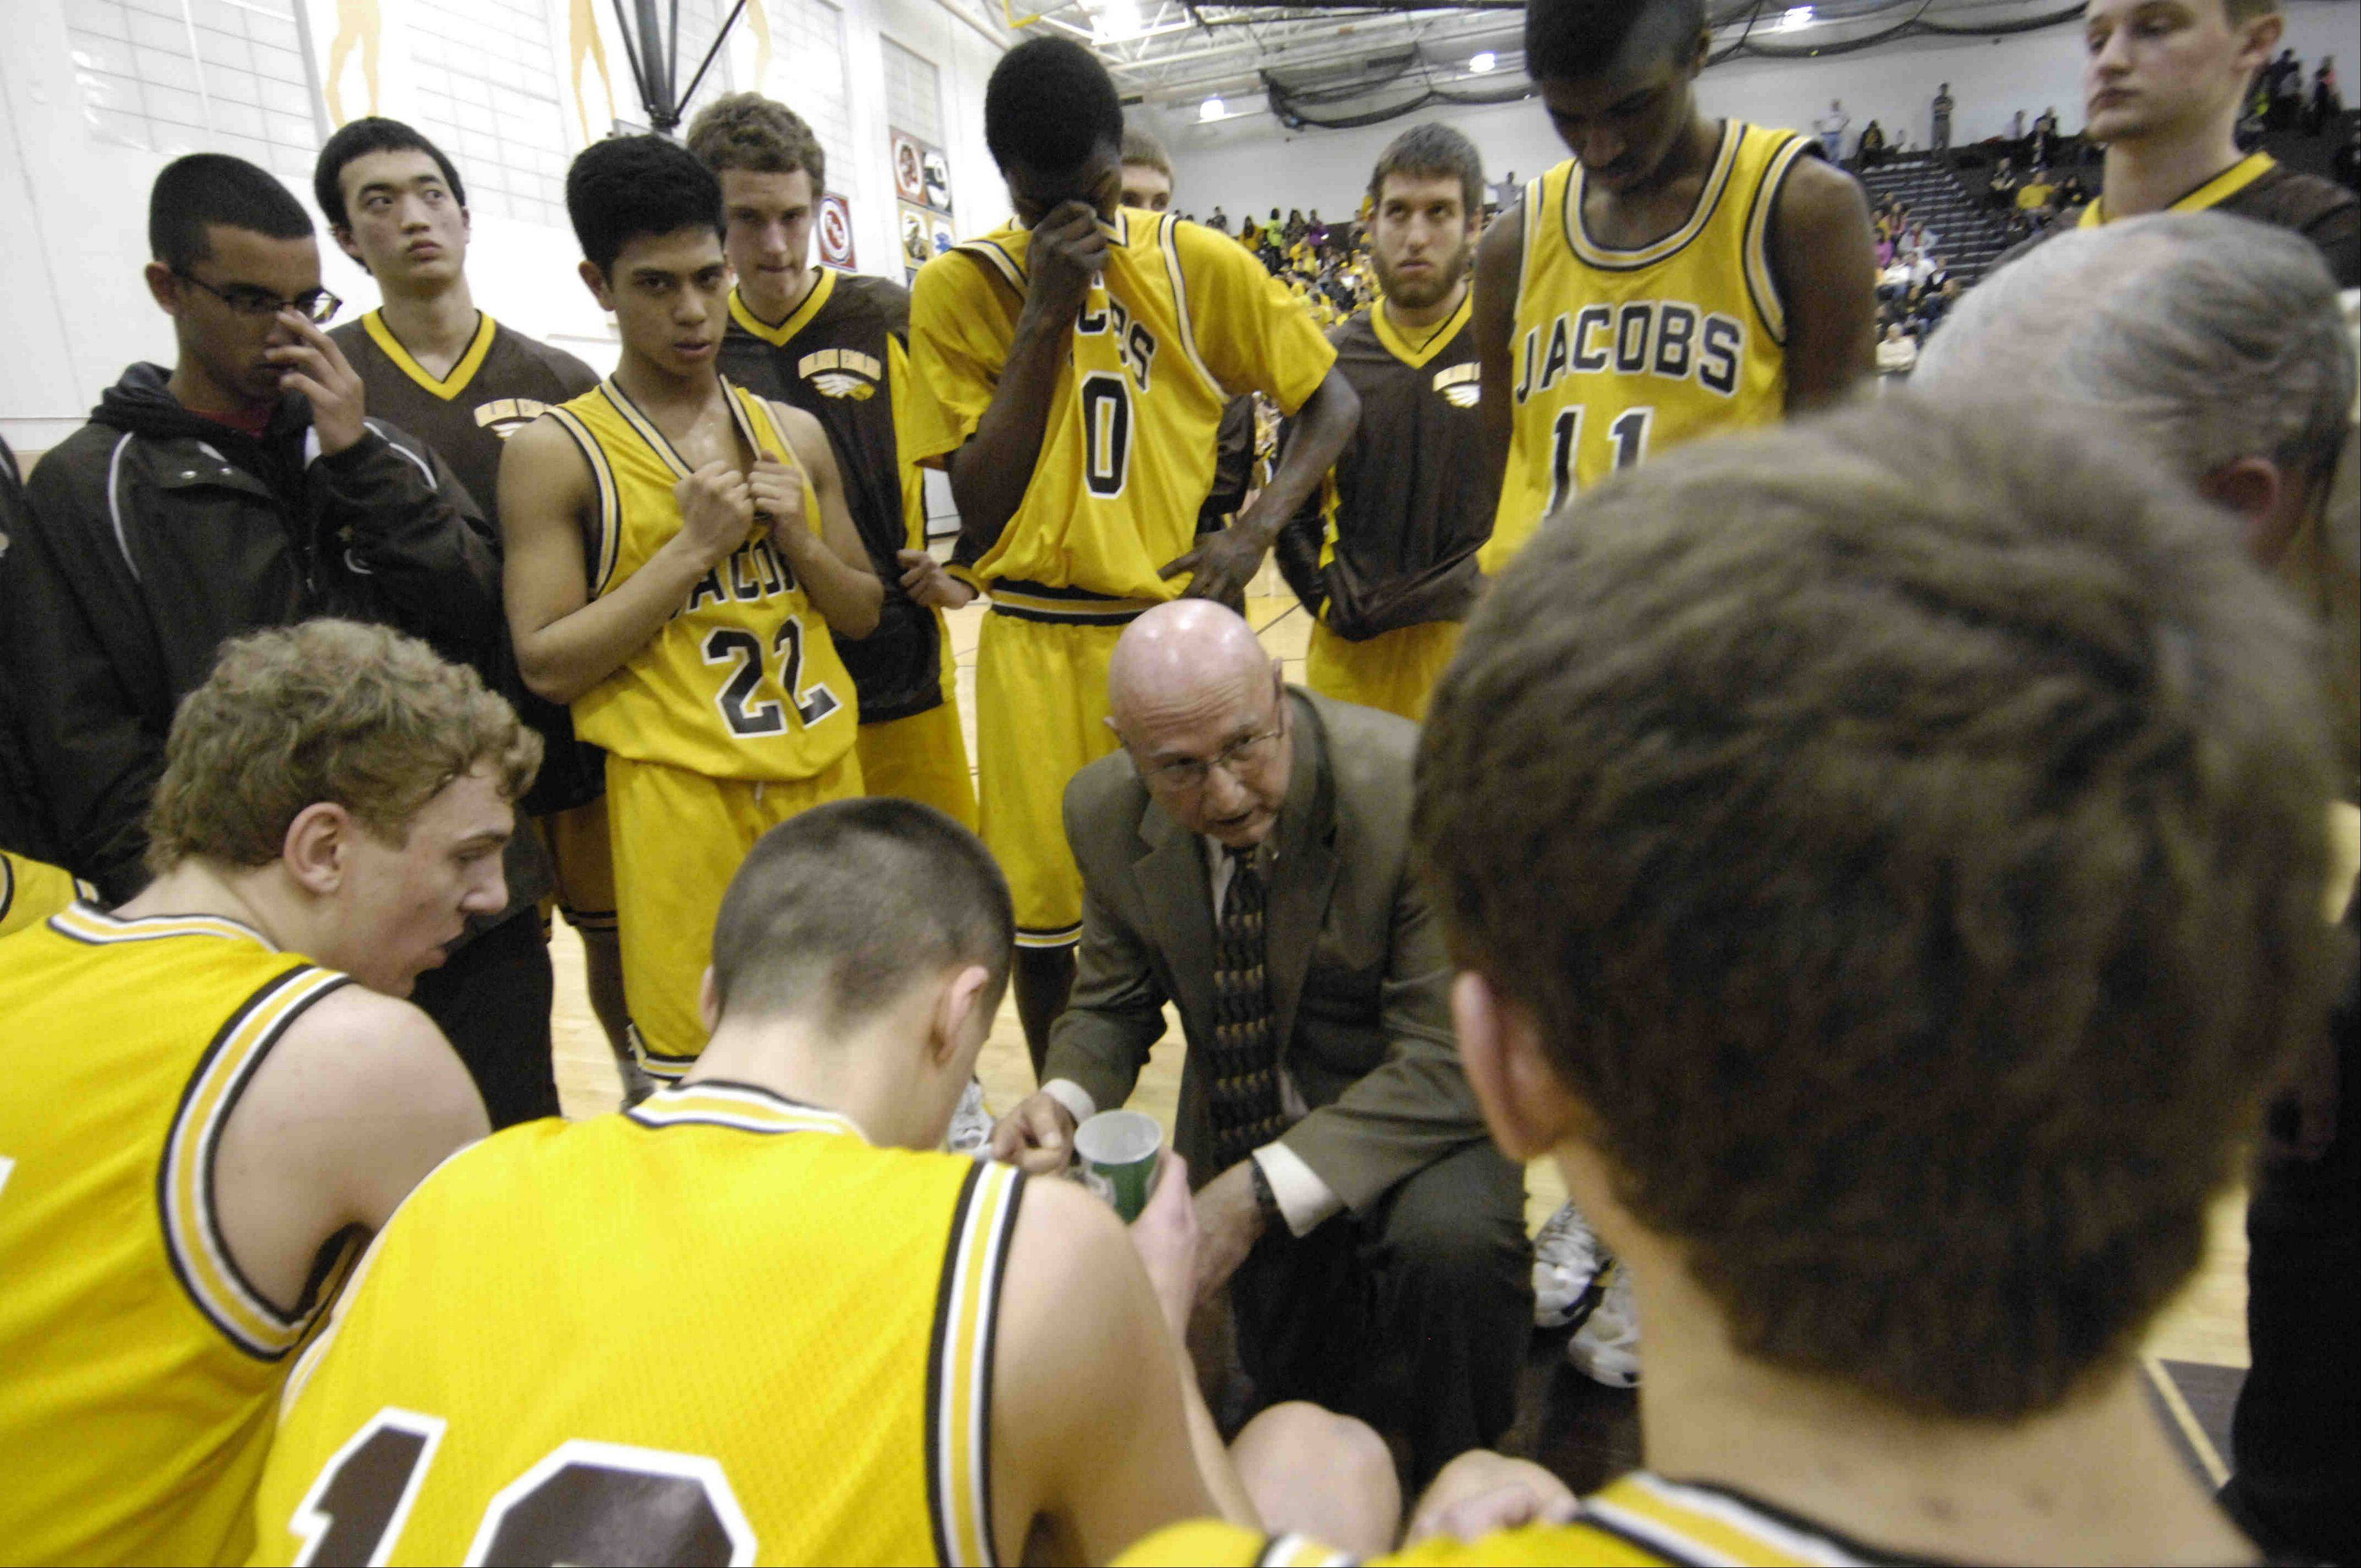 The Jacobs boys basketball team hopes to extend the career of retiring coach Jim Hinkle tonight when the Golden Eagles face Crystal Lake Central in the Class 4A Jacobs regional final.